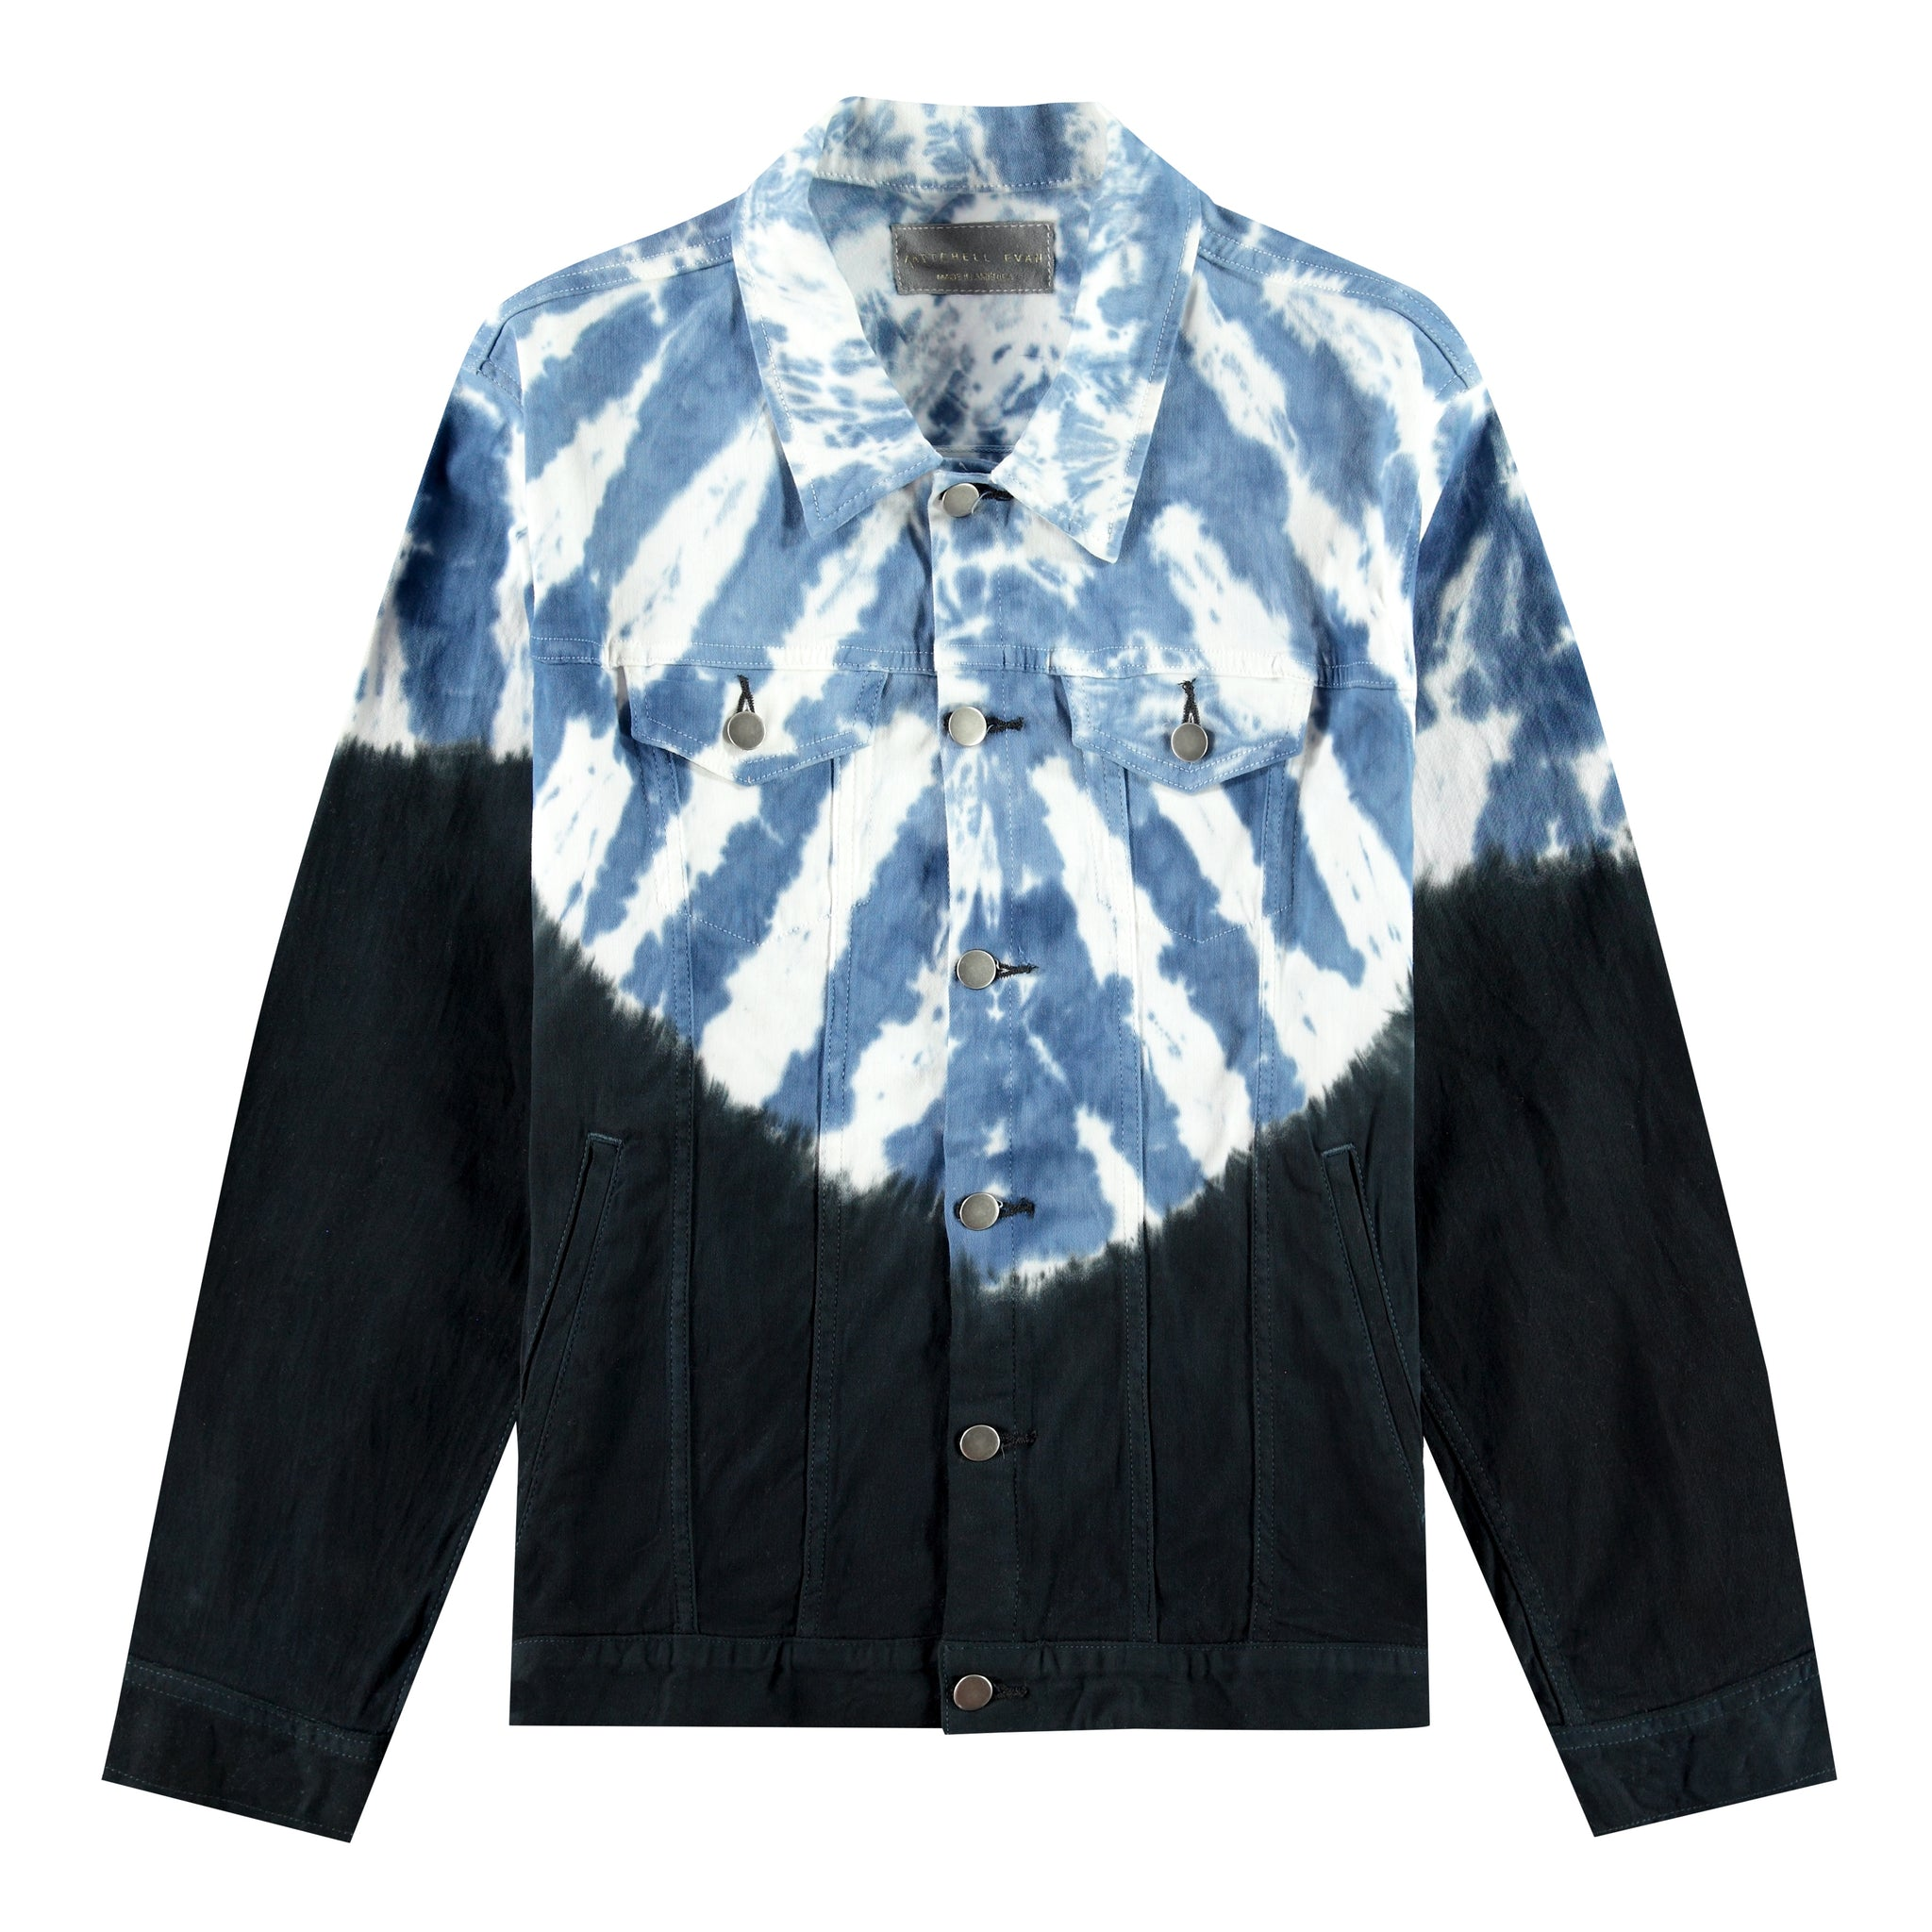 The Rico Twill Jacket in Blue Dye - Mitchell Evan